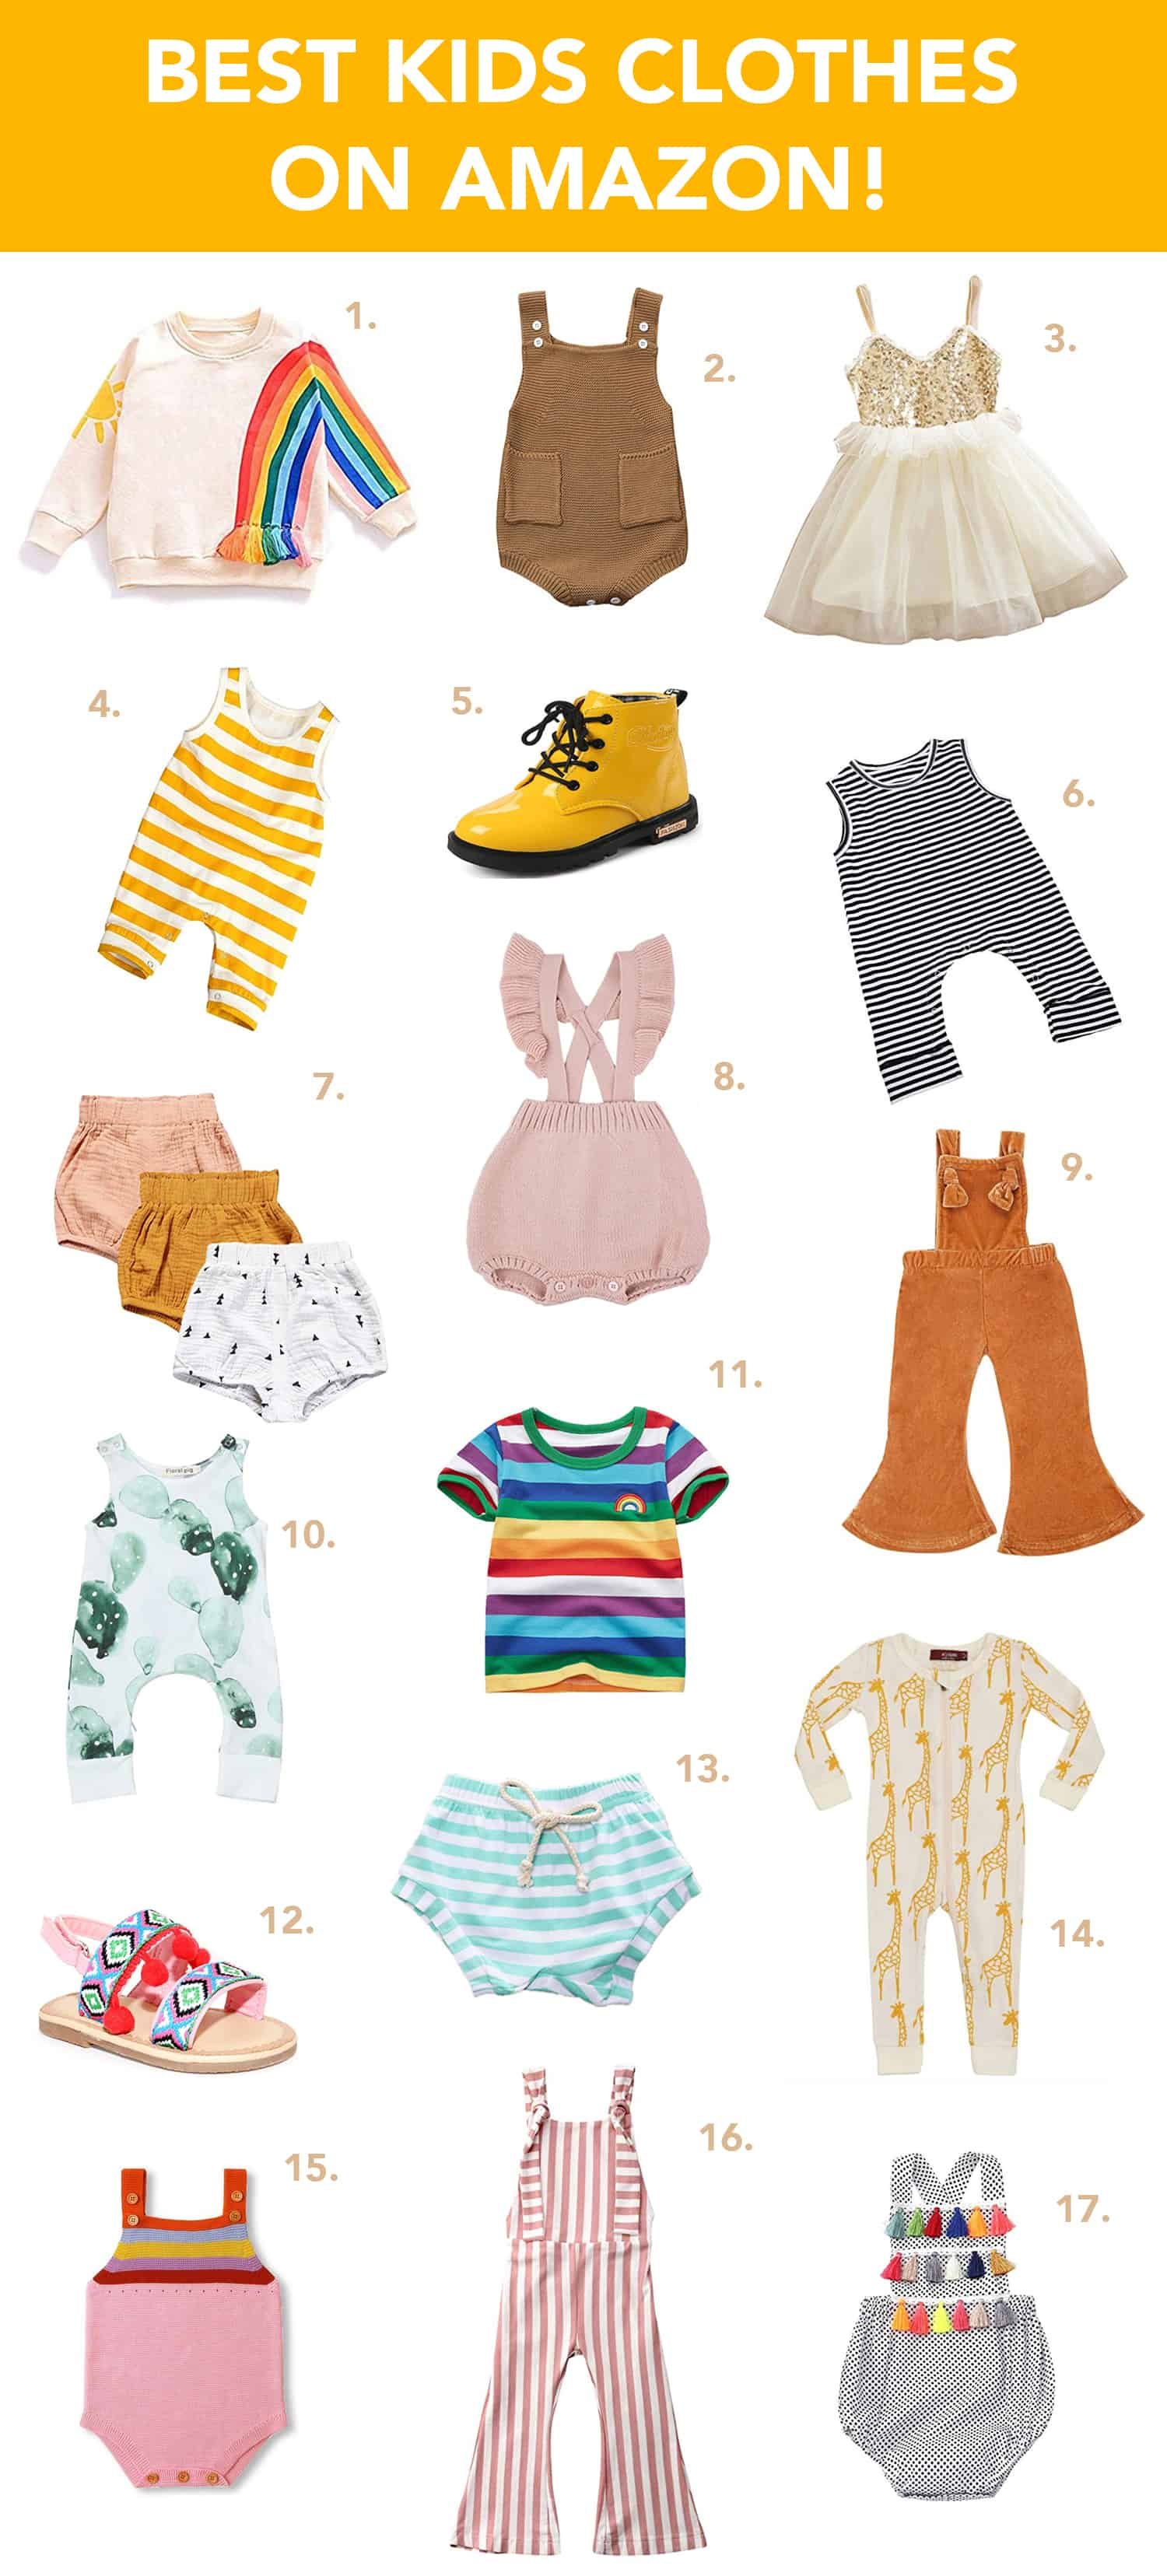 d75106421cb90 Our Favorite Kids Clothes On Amazon! | A Beautiful Mess | Bloglovin'